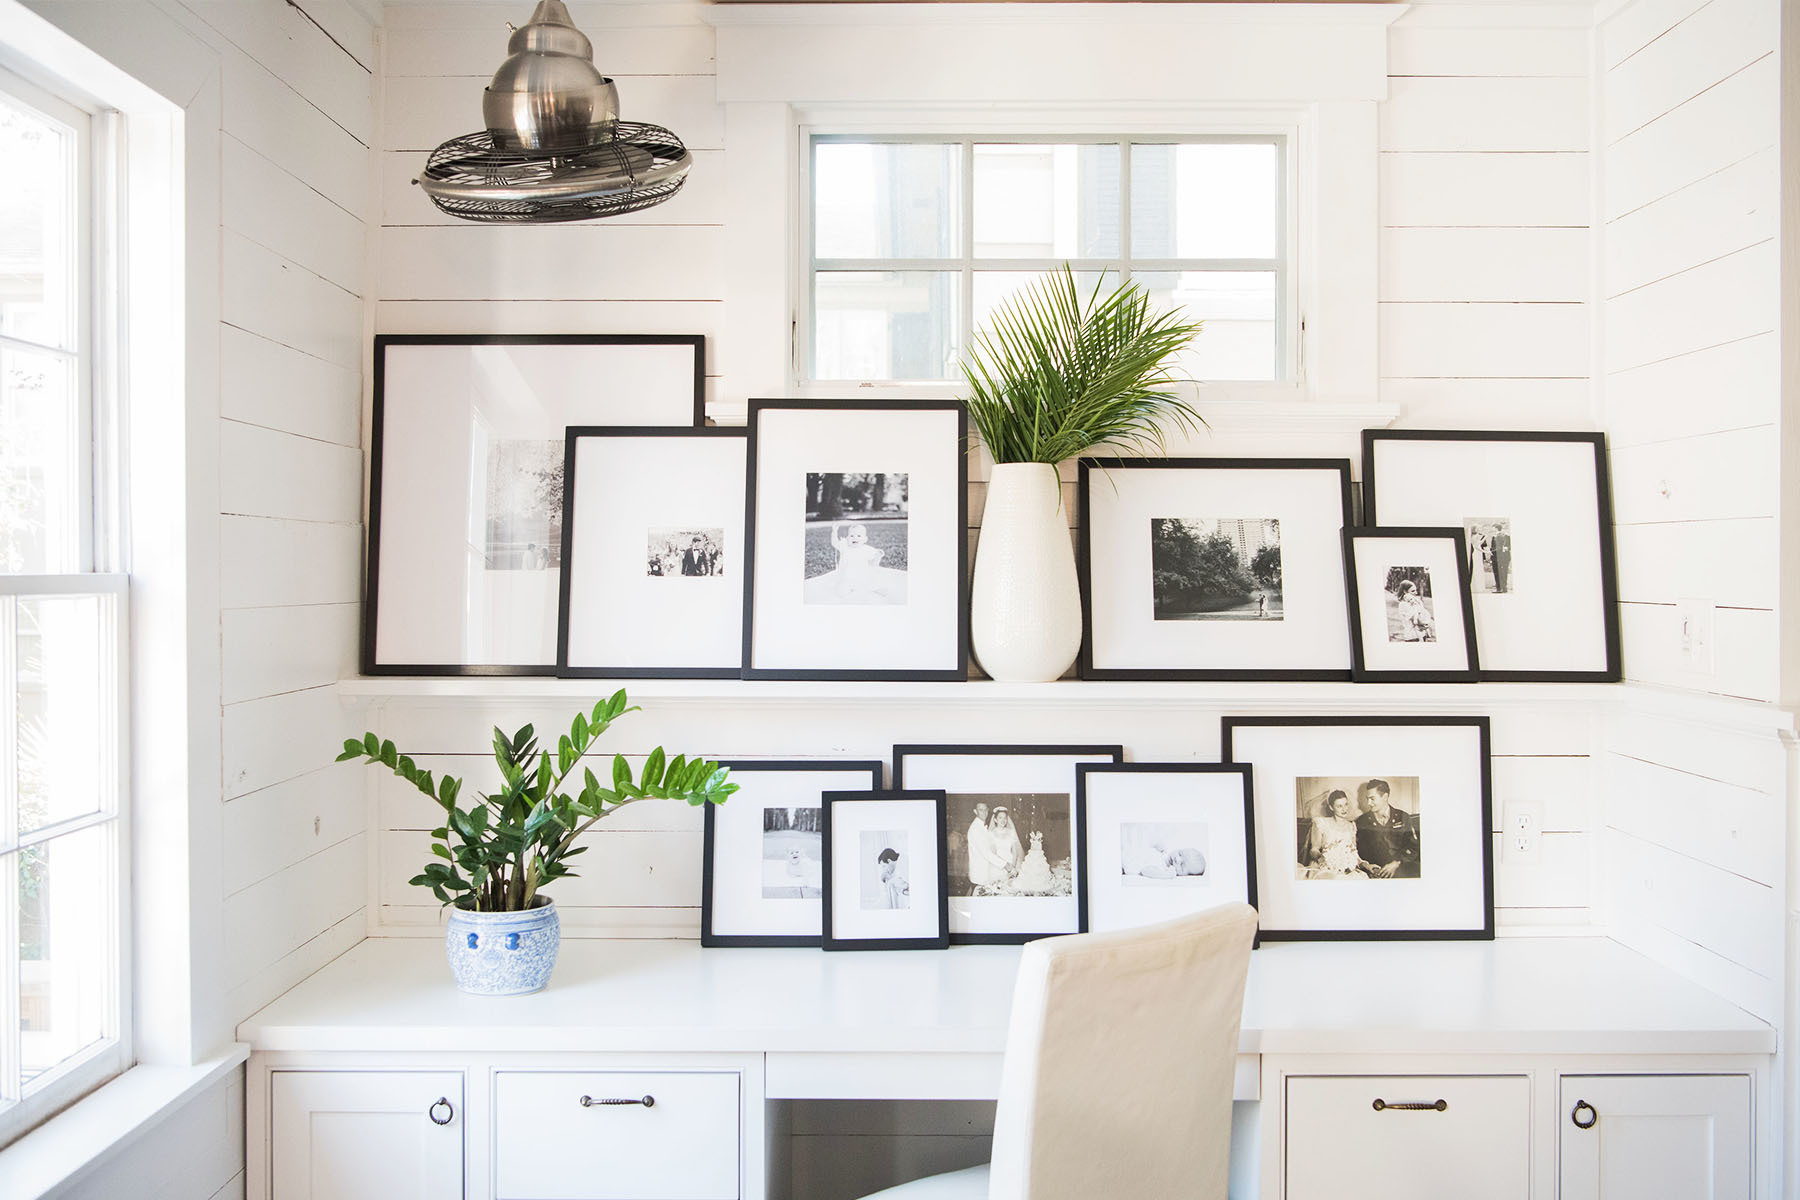 """I love white walls because it allows me to play with my artwork. I go through serious design phases, too,"" says the designer. West Elm Gallery Frames 